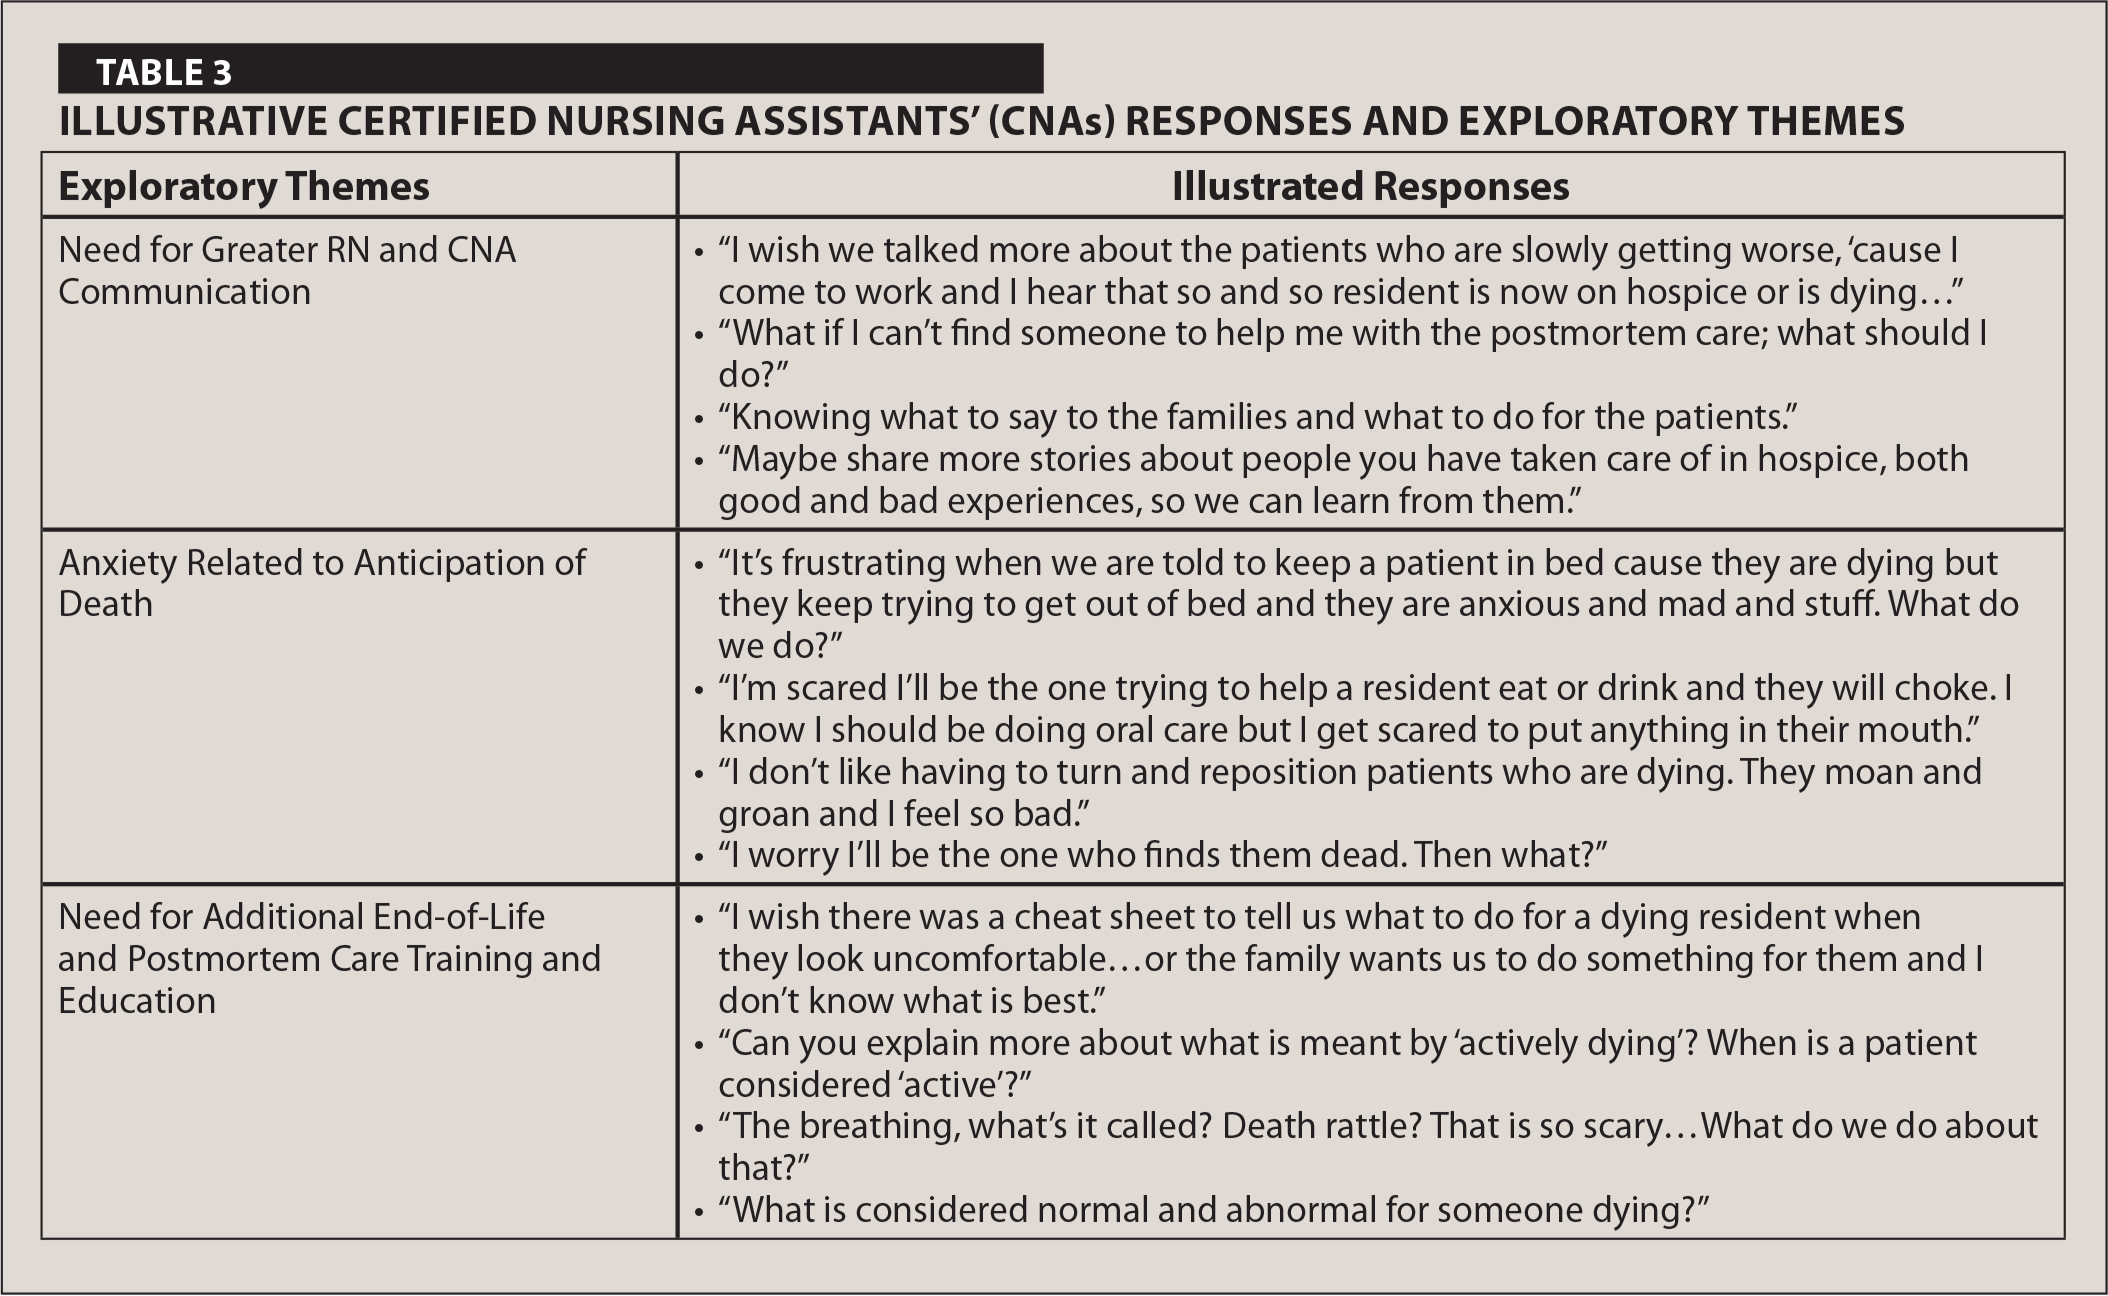 Illustrative Certified Nursing Assistants' (CNAs) Responses and Exploratory Themes